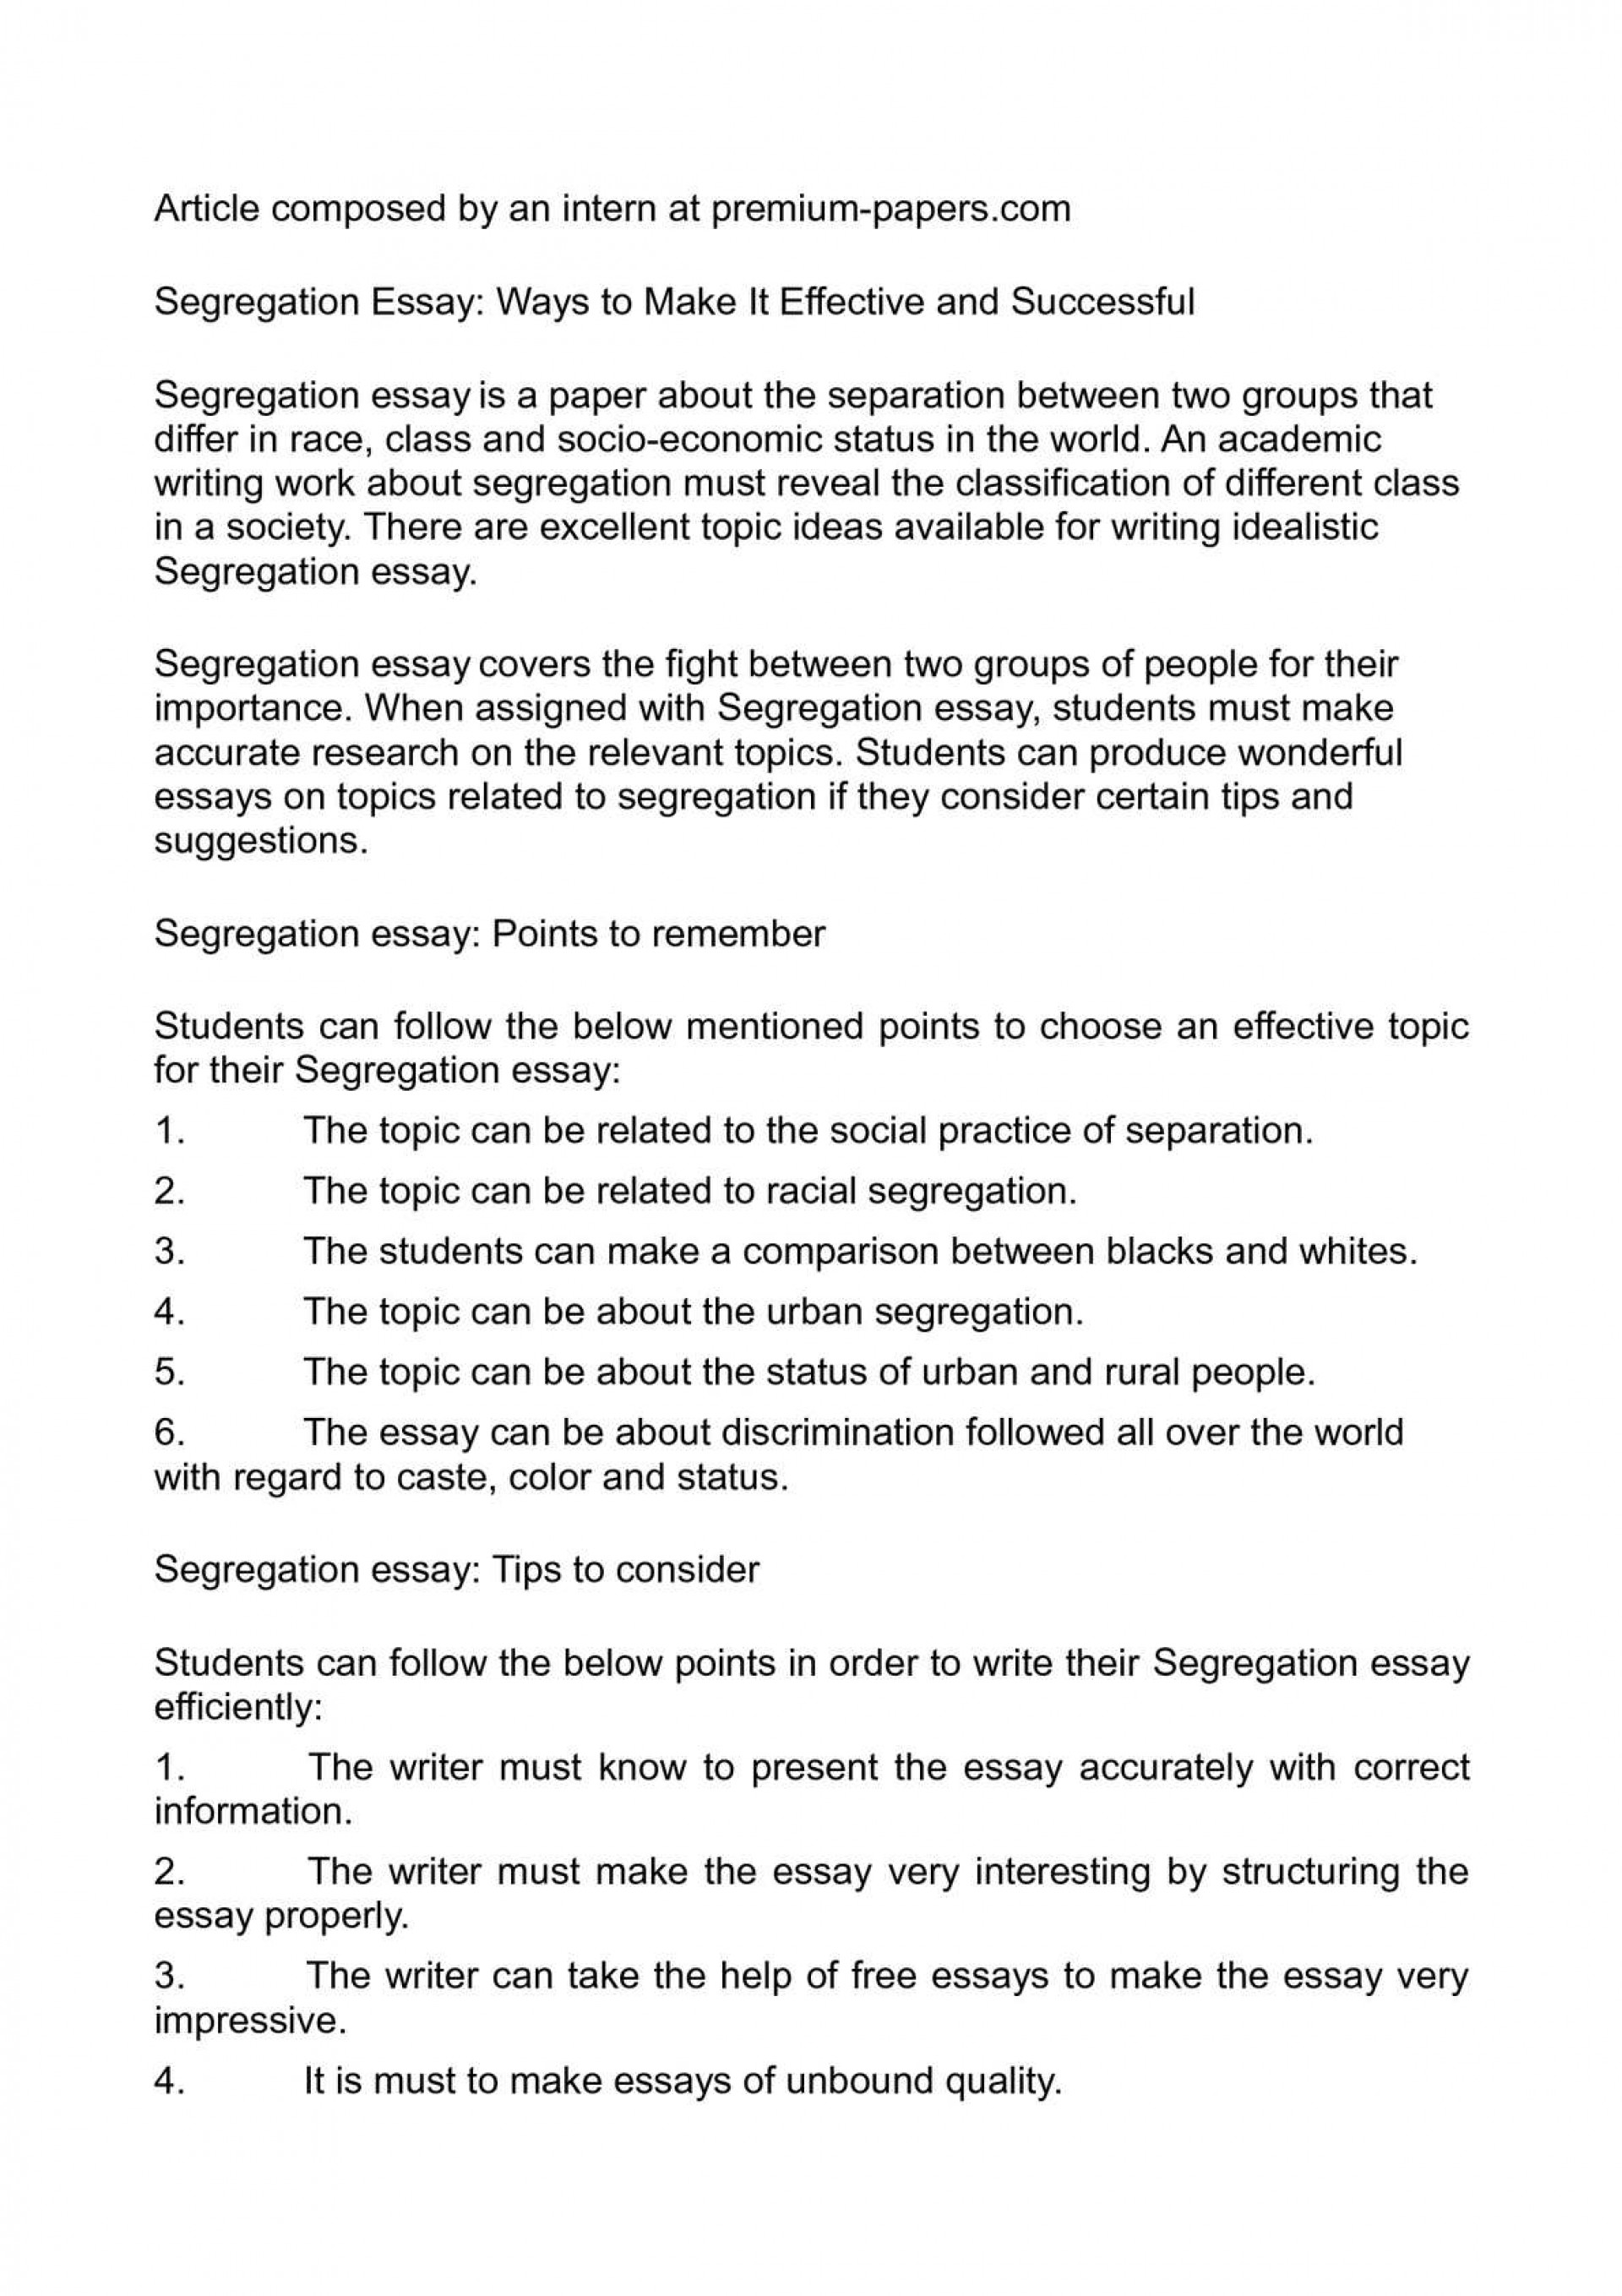 001 Essay Example Segregation Unusual Gender Segregated Schools Occupational On Importance Of Waste At Source 1920